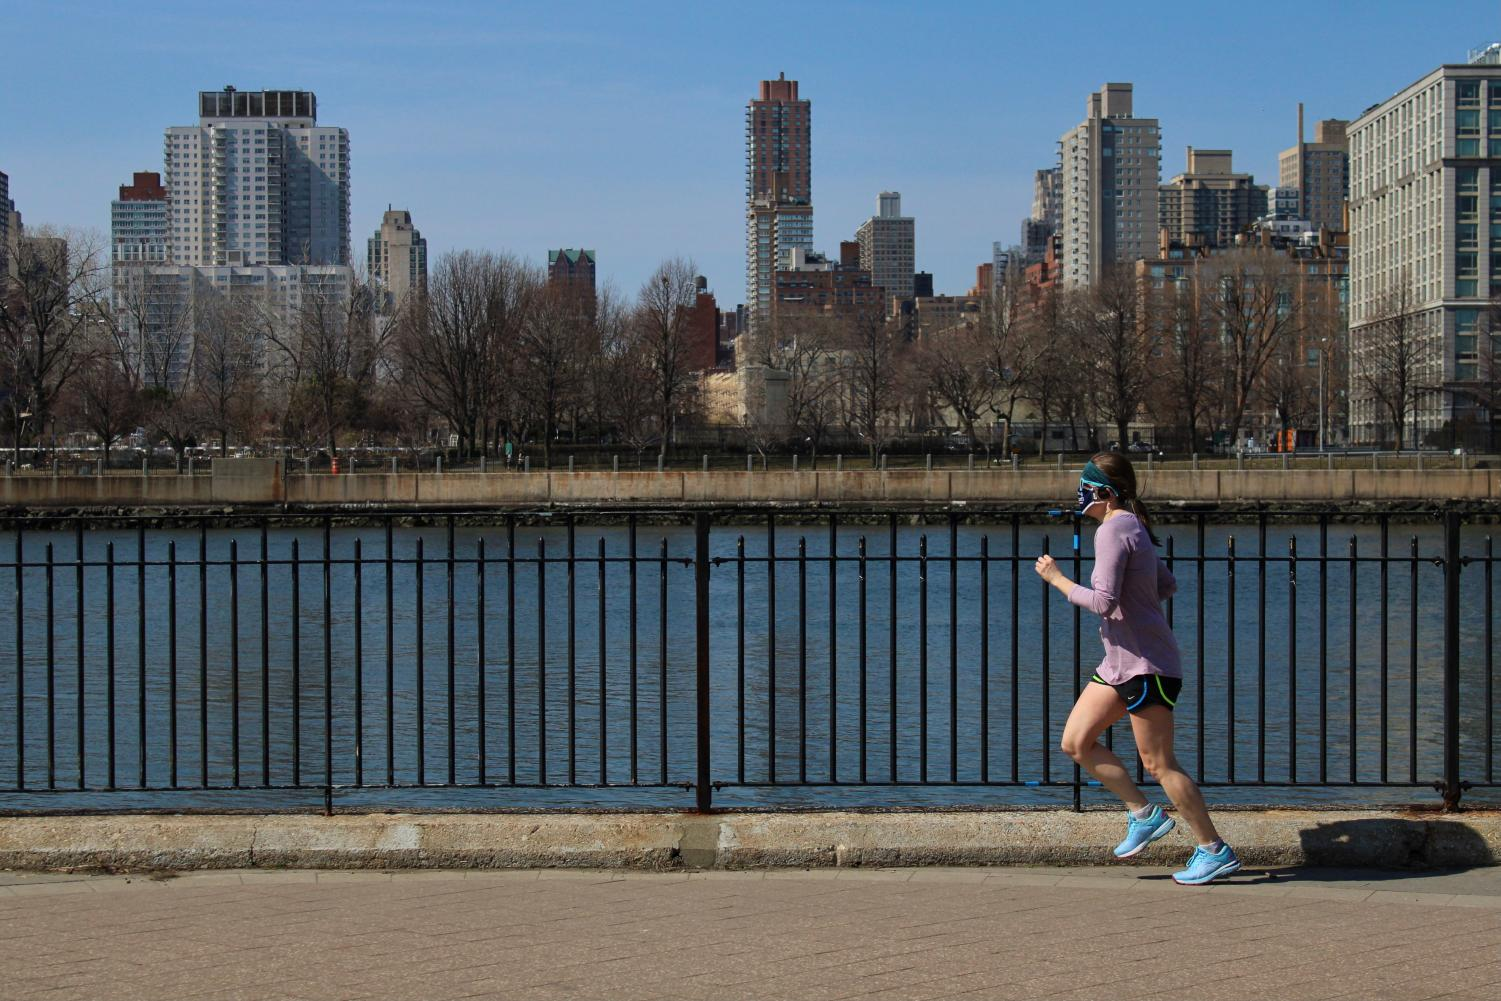 woman running in front of a body of water with a skyline in the background